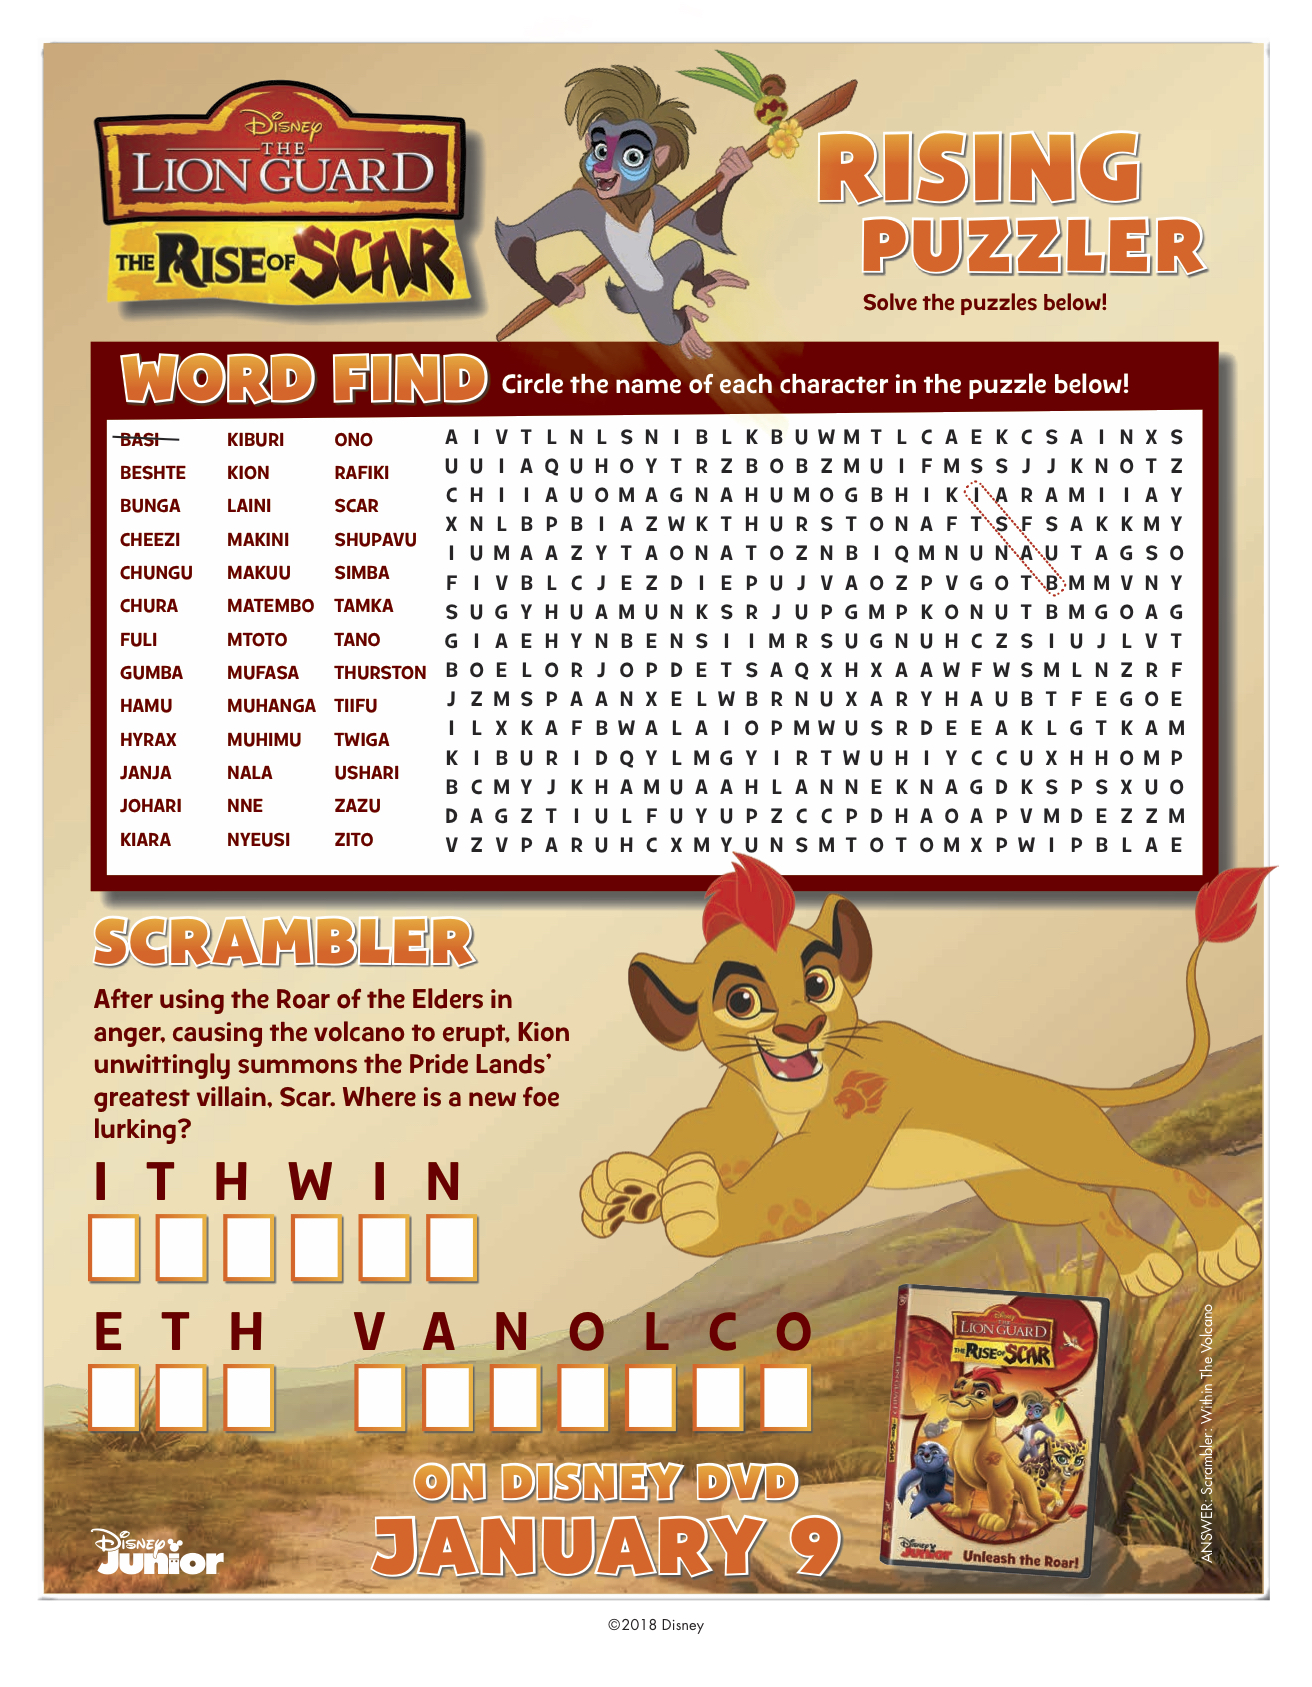 The Lion Guard- The Rise of Scar Puzzler